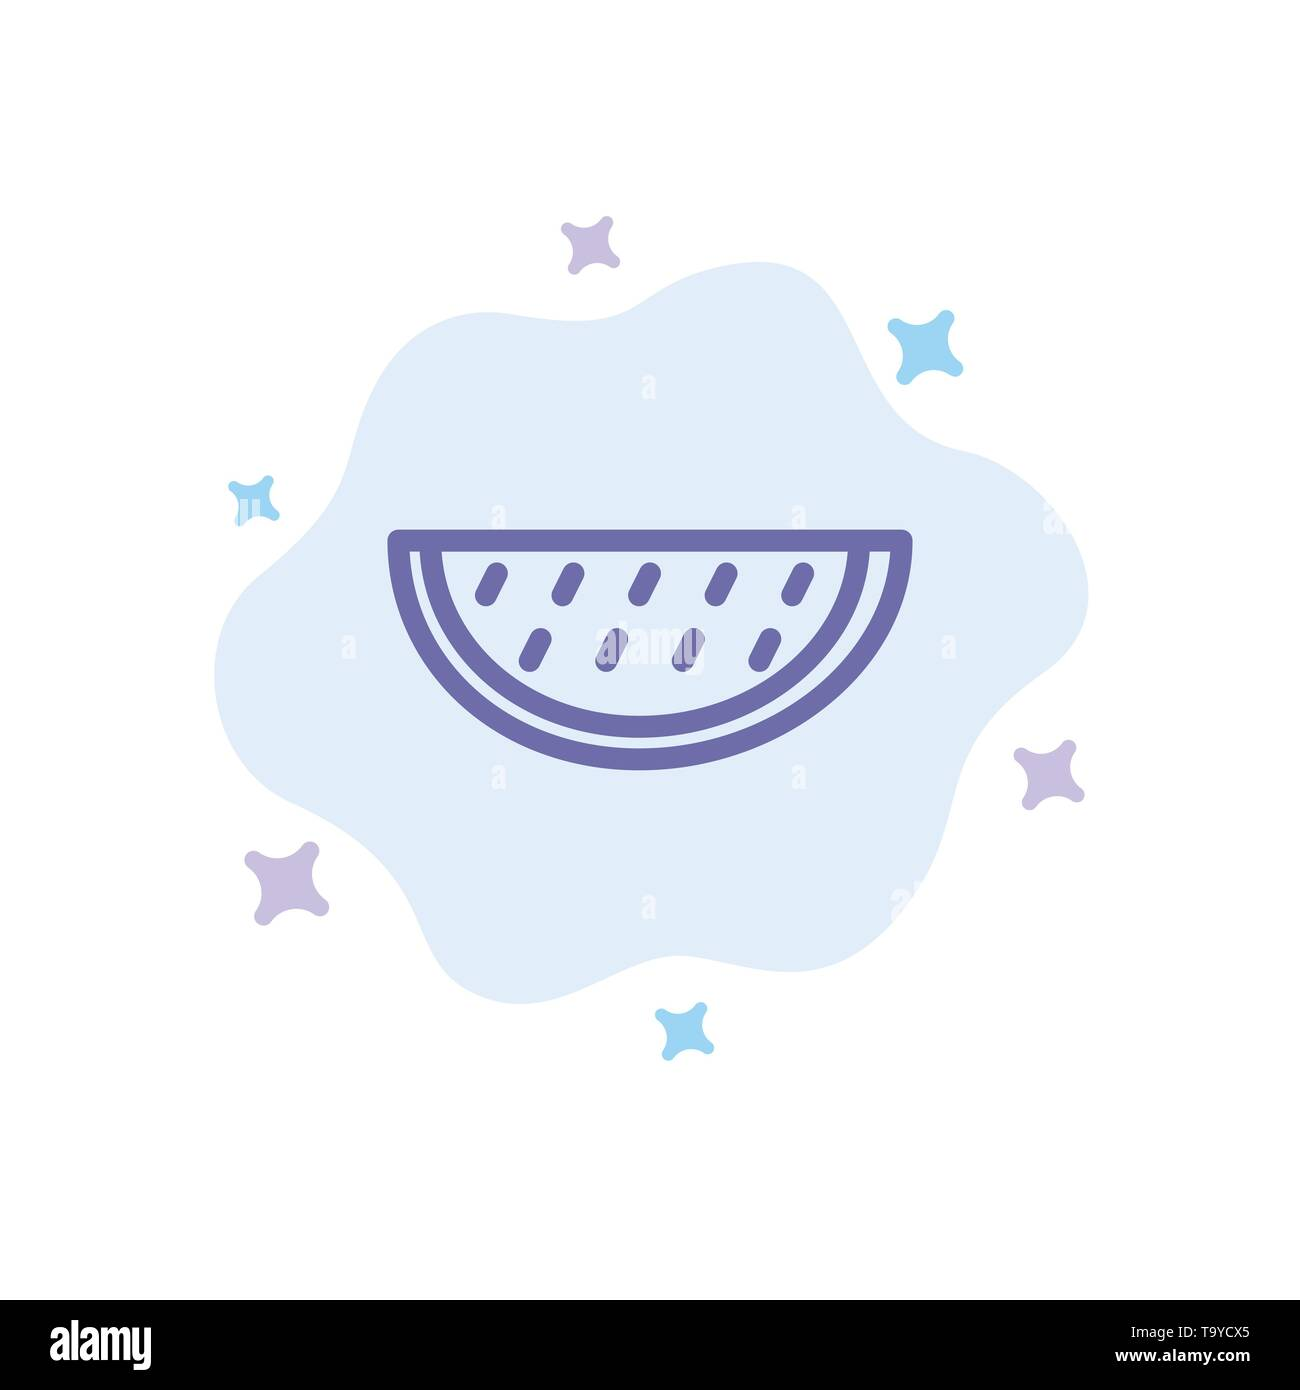 Fruits, Melon, Summer, Water Blue Icon on Abstract Cloud Background - Stock Image